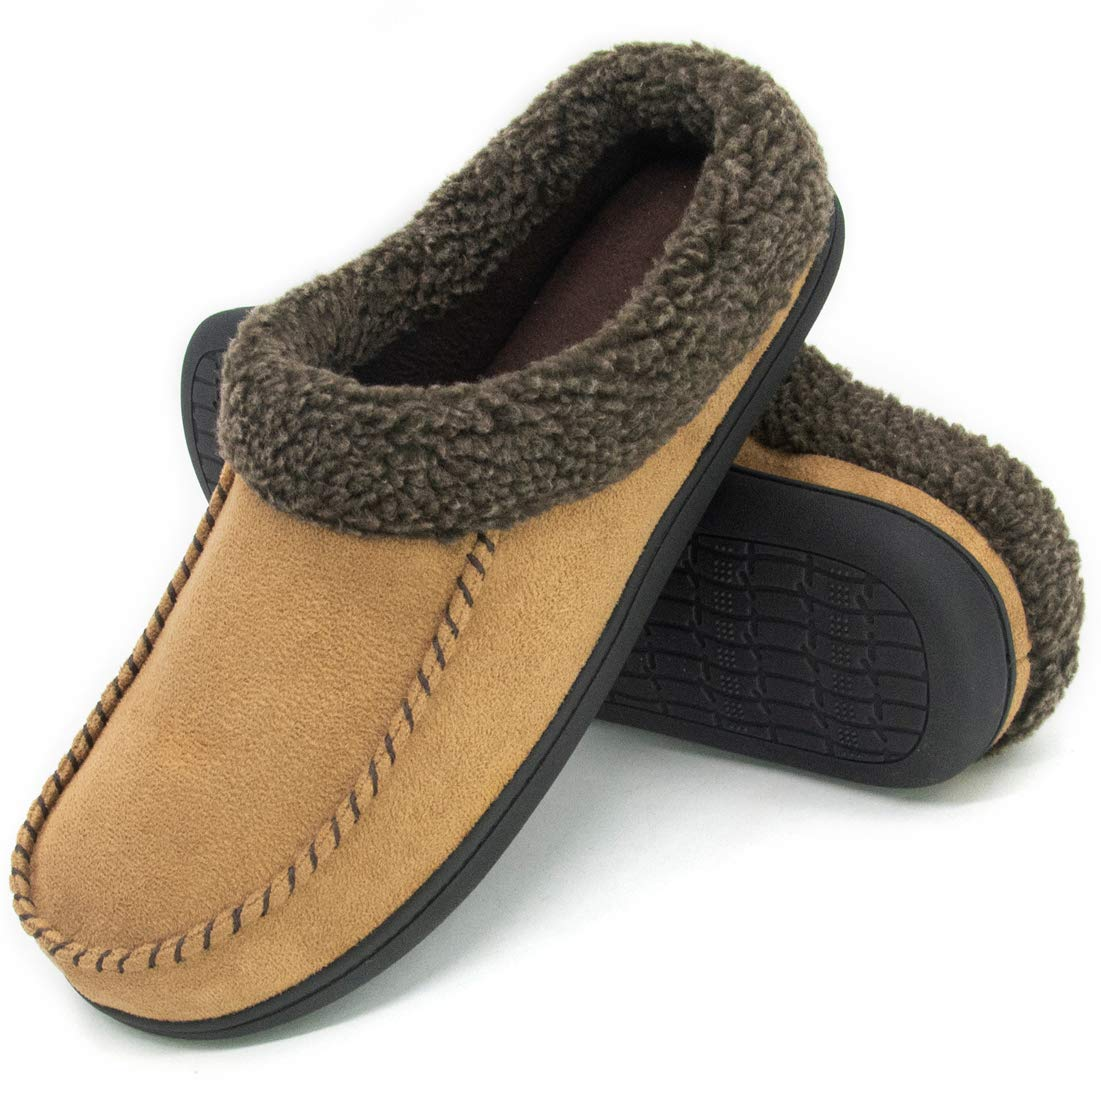 9f882f3864d ULTRAIDEAS Men s Cozy Memory Foam Moccasin Suede Slippers with Fuzzy Plush  Wool-Like Lining